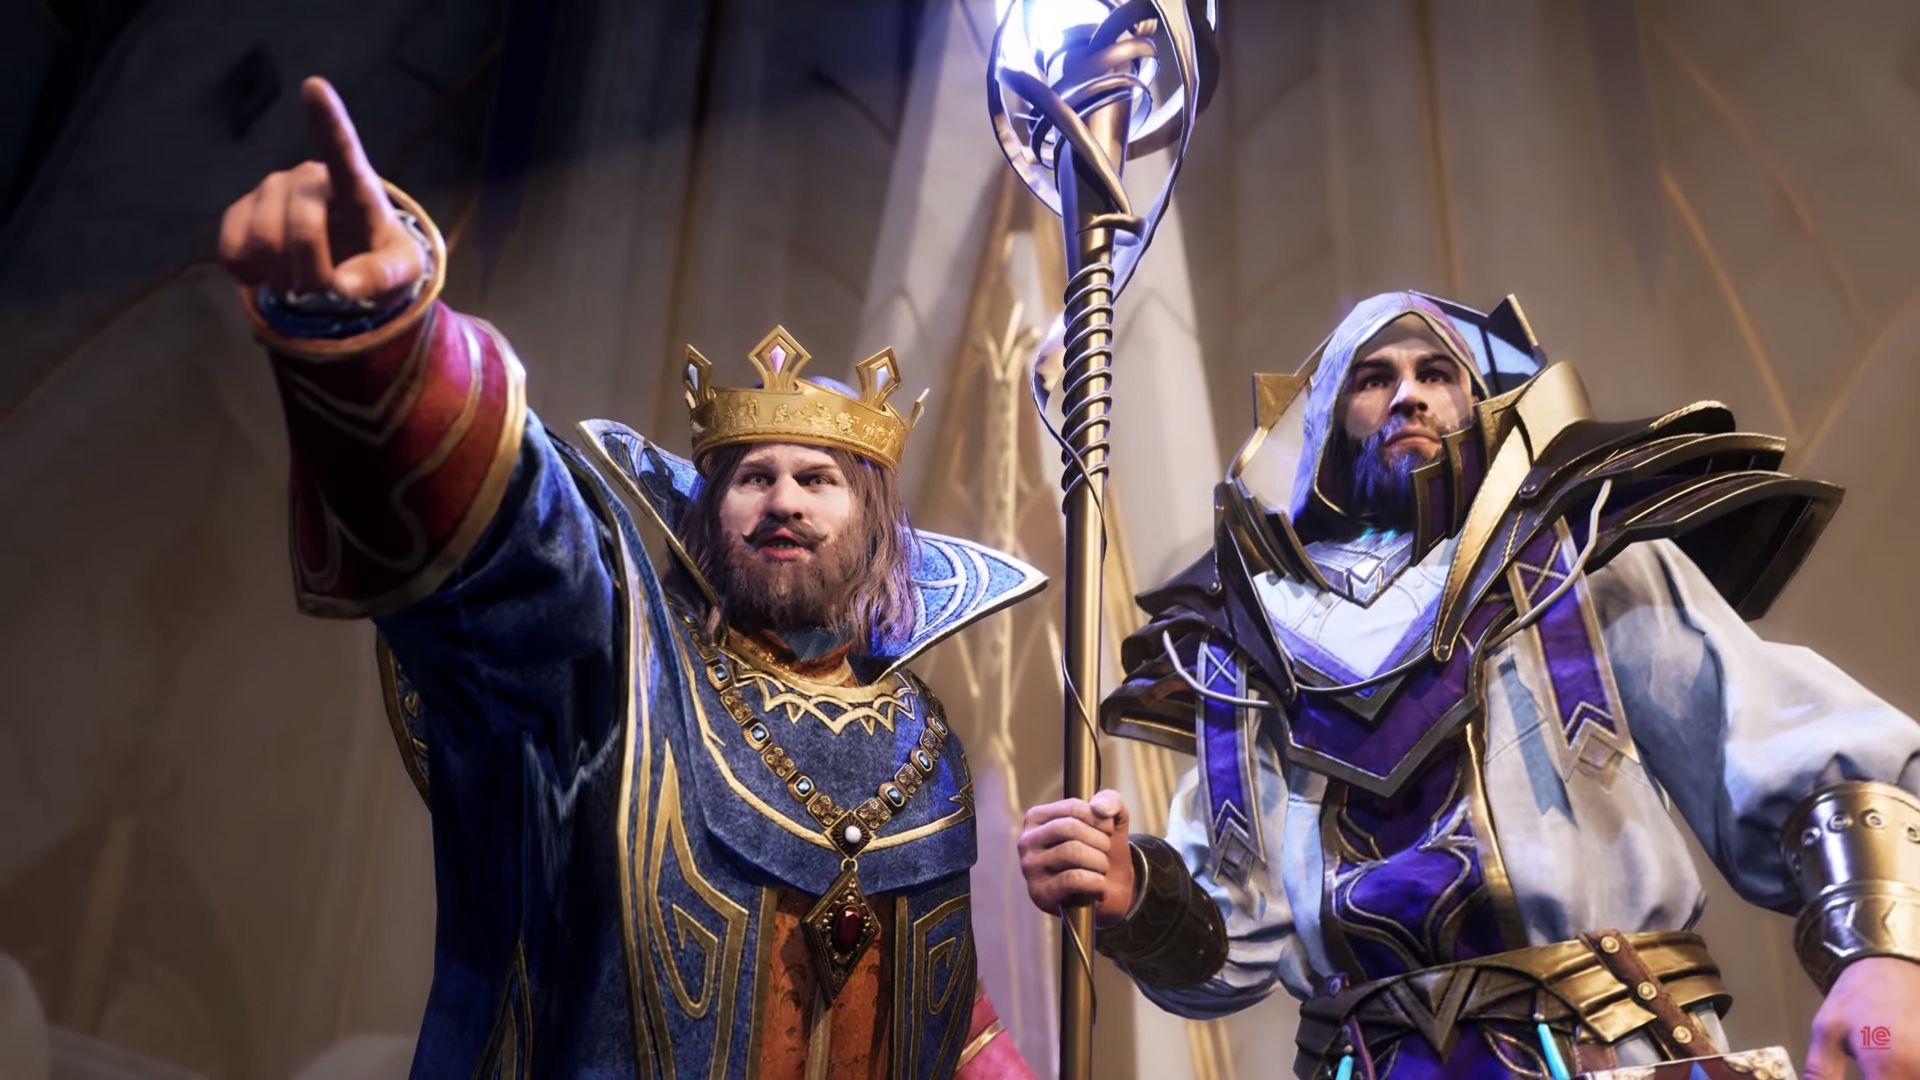 King's Bounty 2 release delayed to August